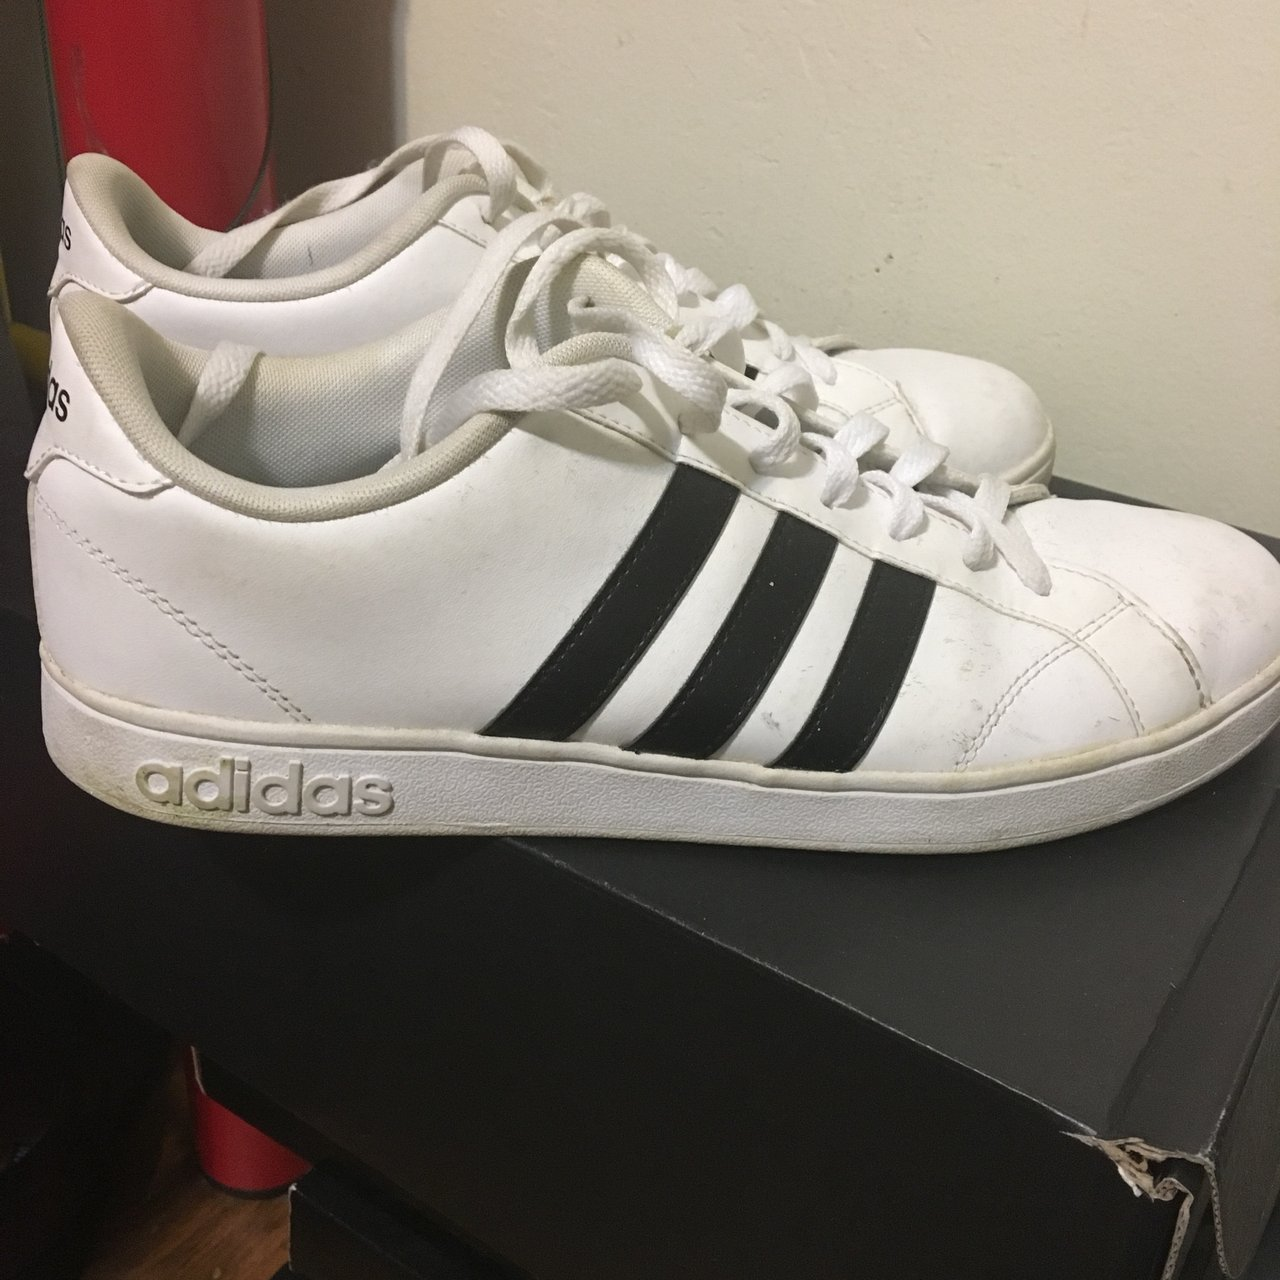 e2c10f640 Slightly worn White adidas shoes Size 9.5 Condition